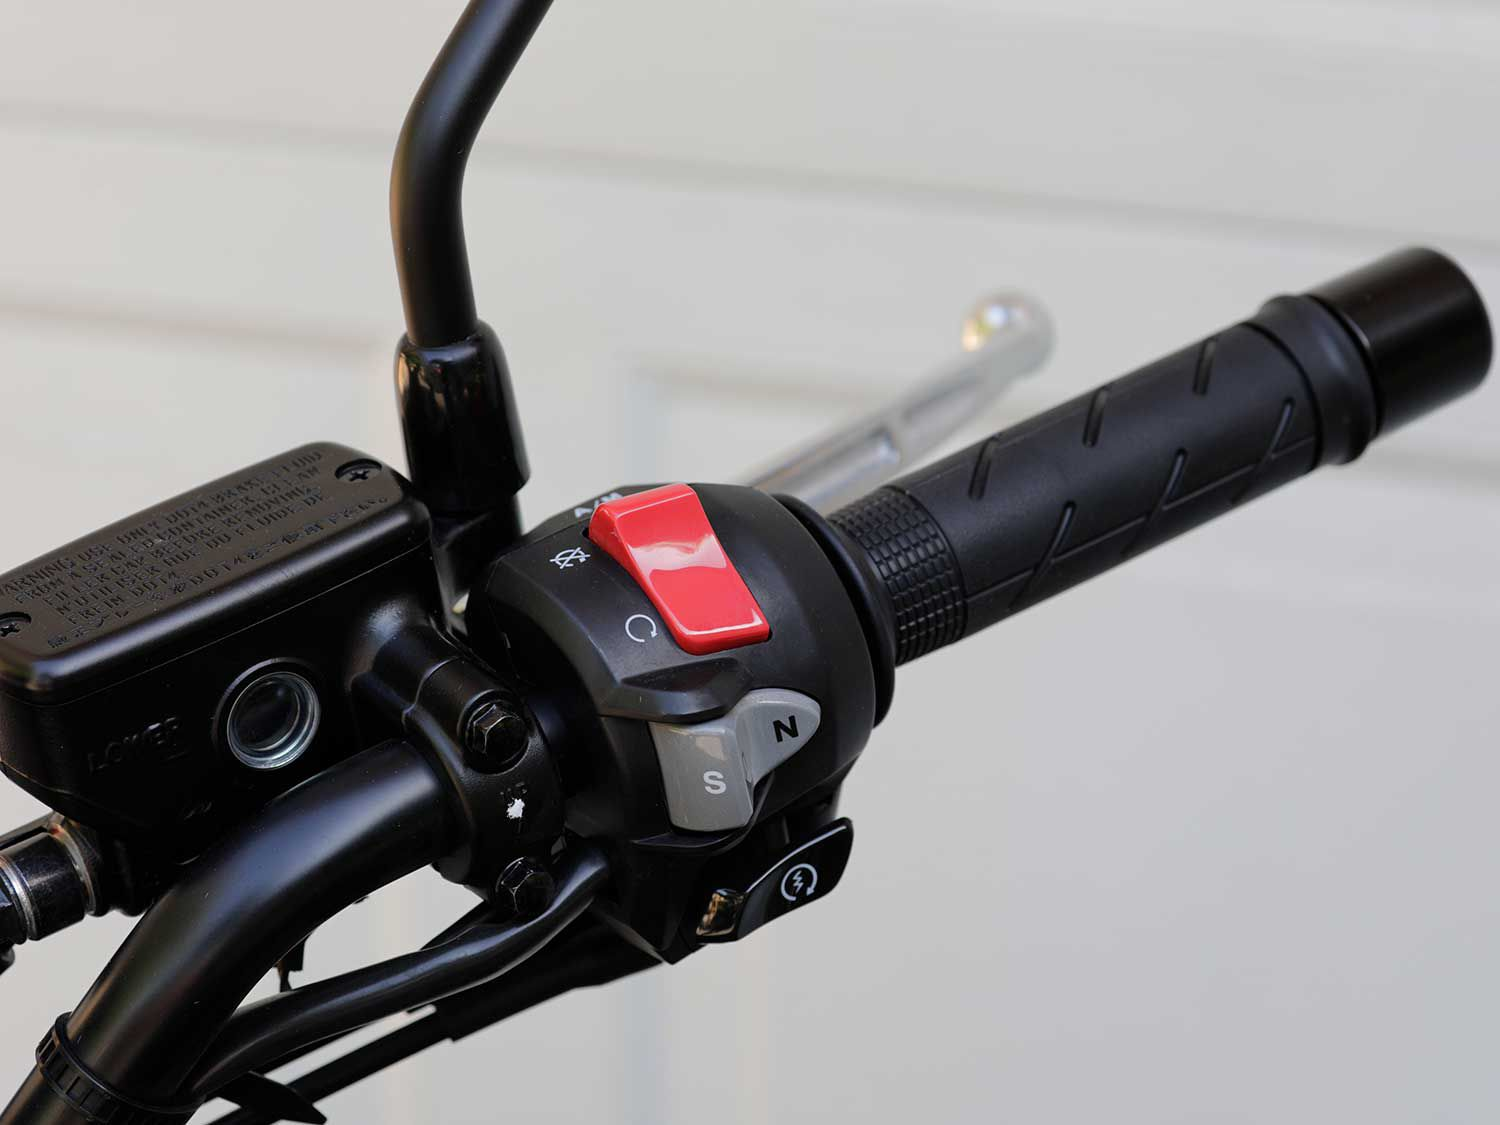 We test rode Honda's DCT-equipped NC750X which deletes the manual clutch and gearshift lever for this handlebar-mounted switch gear.